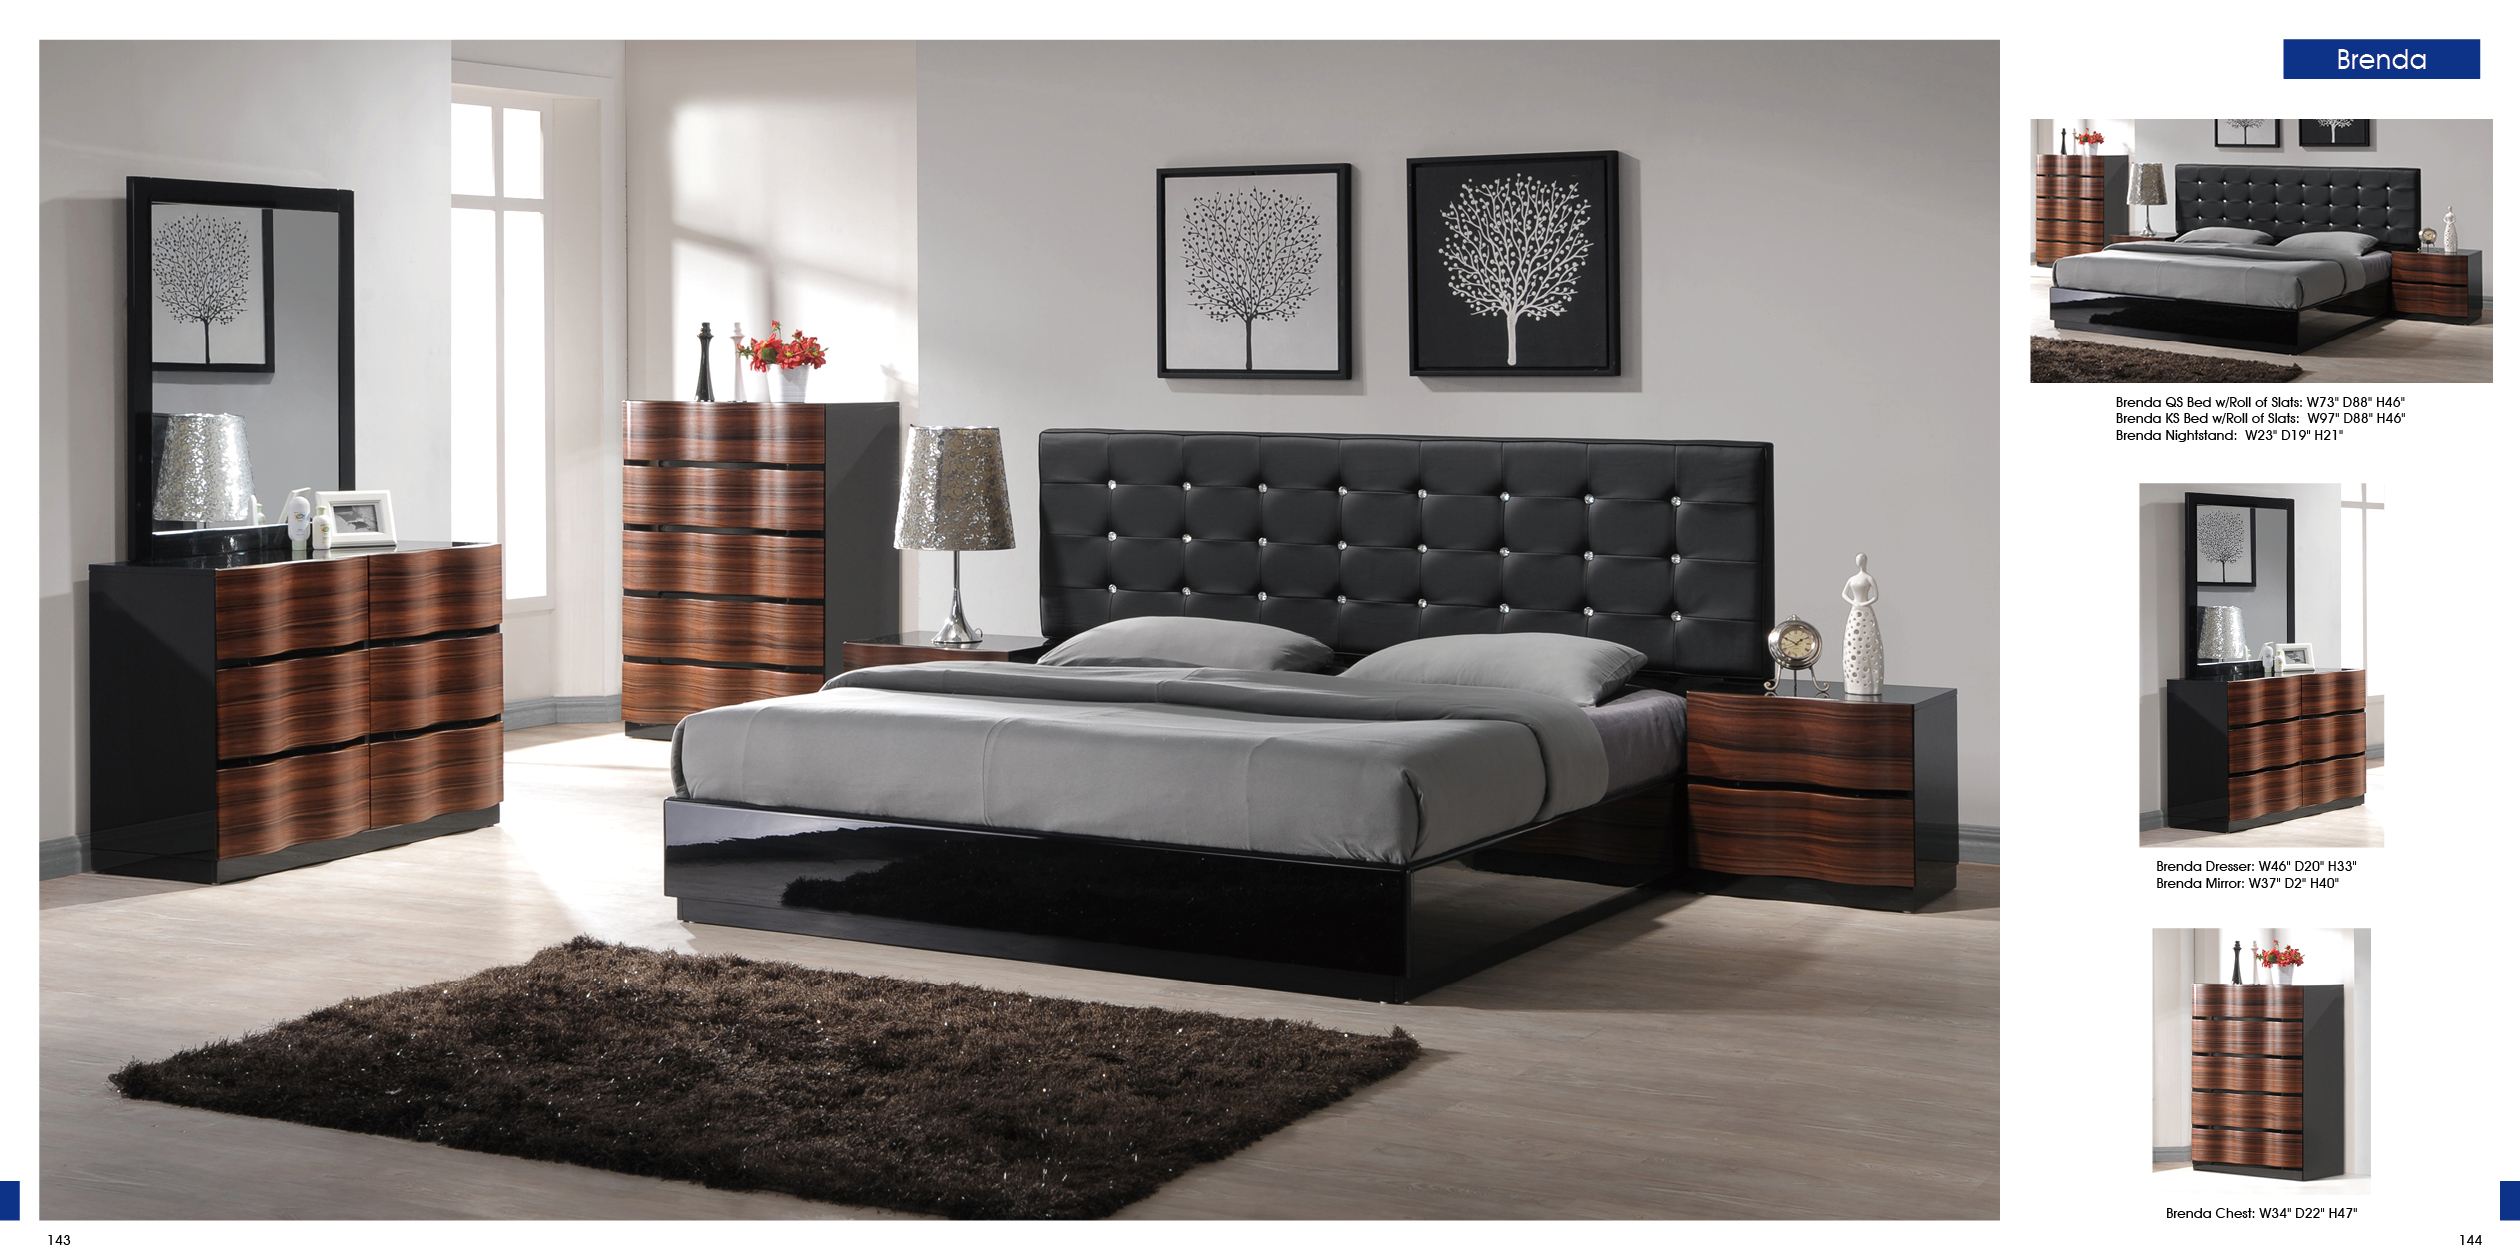 Best of modern bedroom furniture house home for Home bedroom furniture